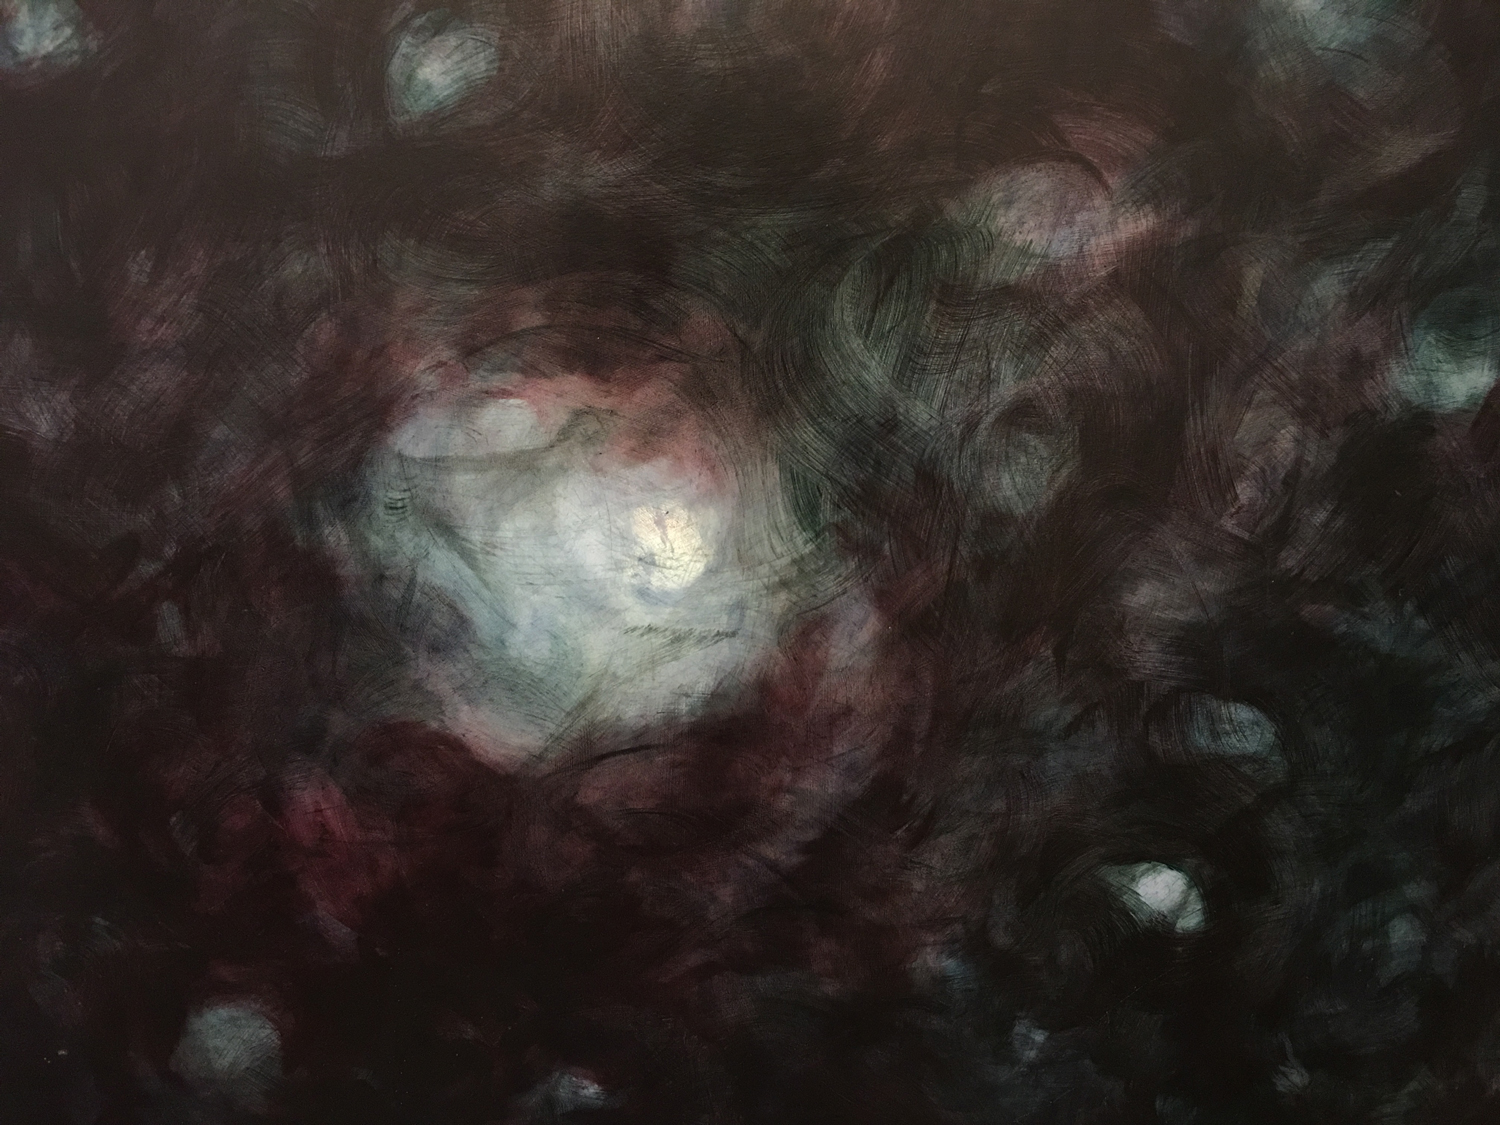 Galaxy (detail), 2009, Oil on panel, 5ft x 6ft